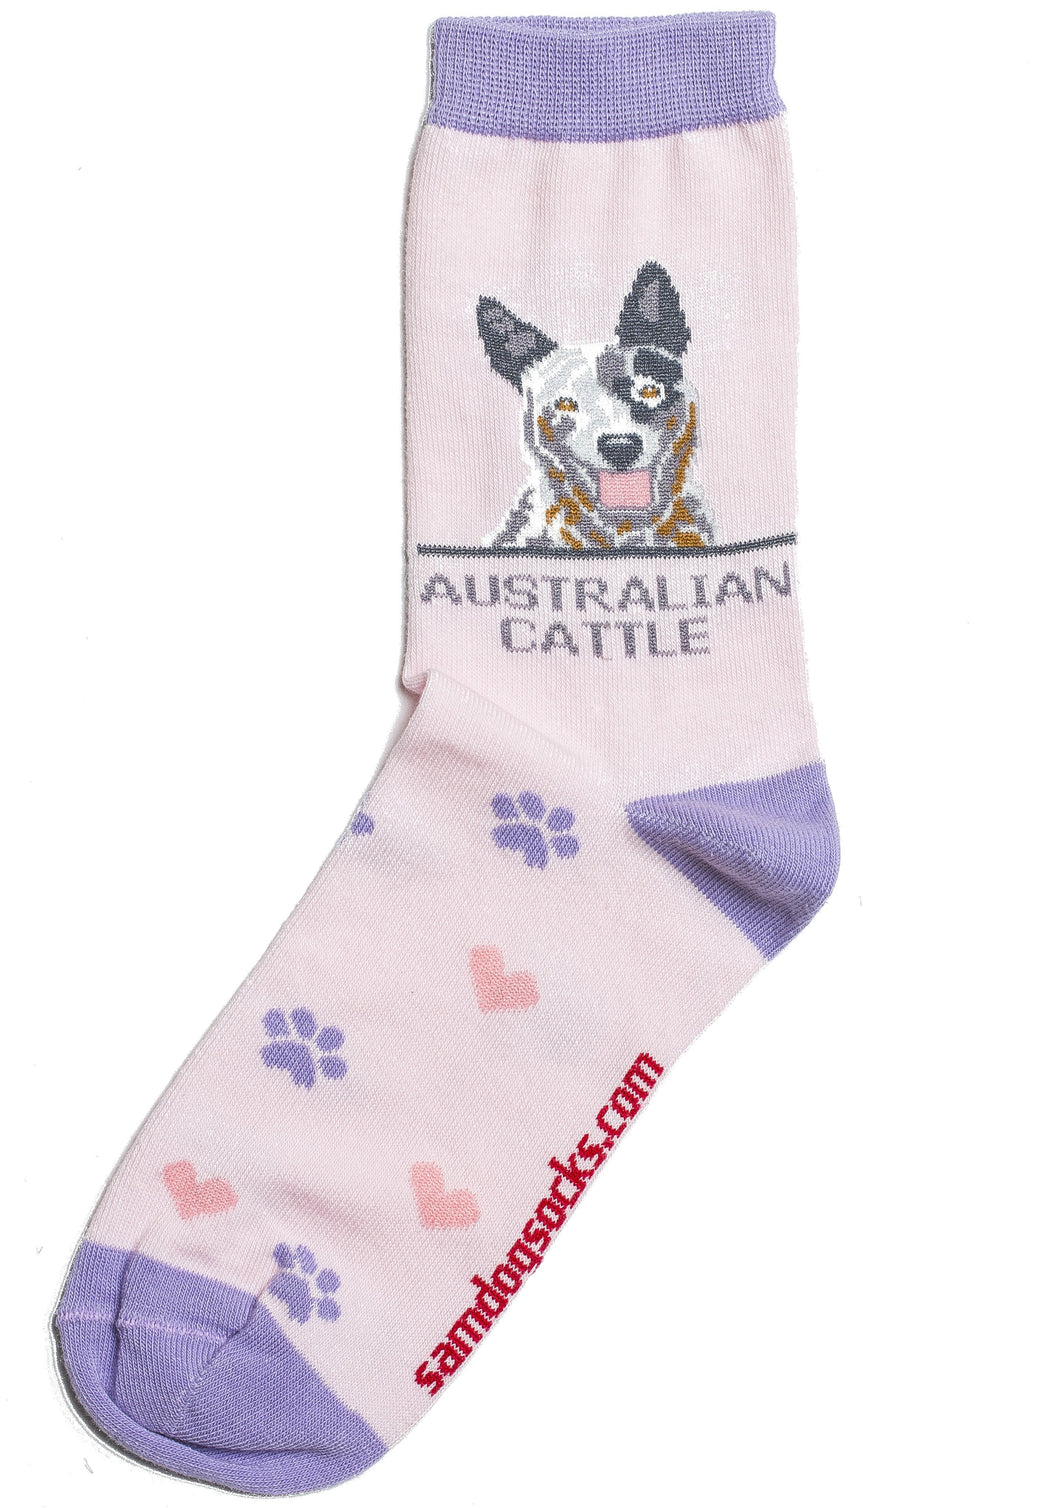 Australian Cattle Dog Socks AKA Blue Heeler Dog - samnoveltysocks.com